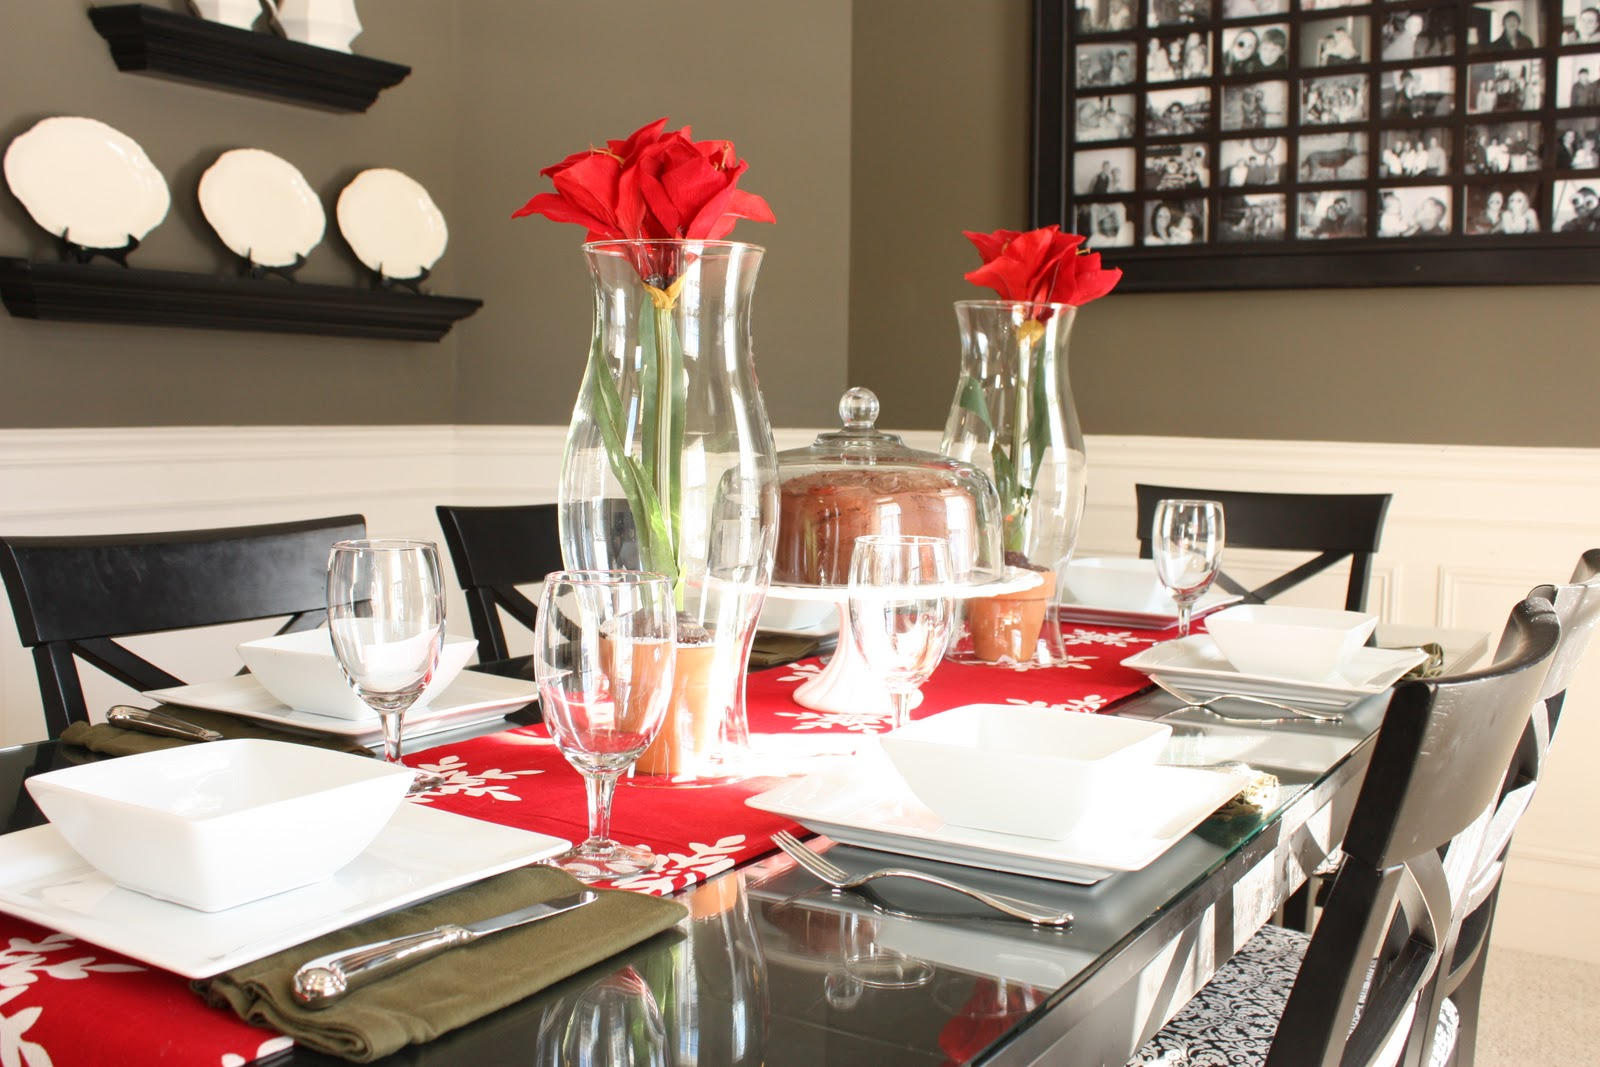 Decorating Ideas Dining Table 3 Creative Ideas On Decorating A Dining Table Contemporary Flavour